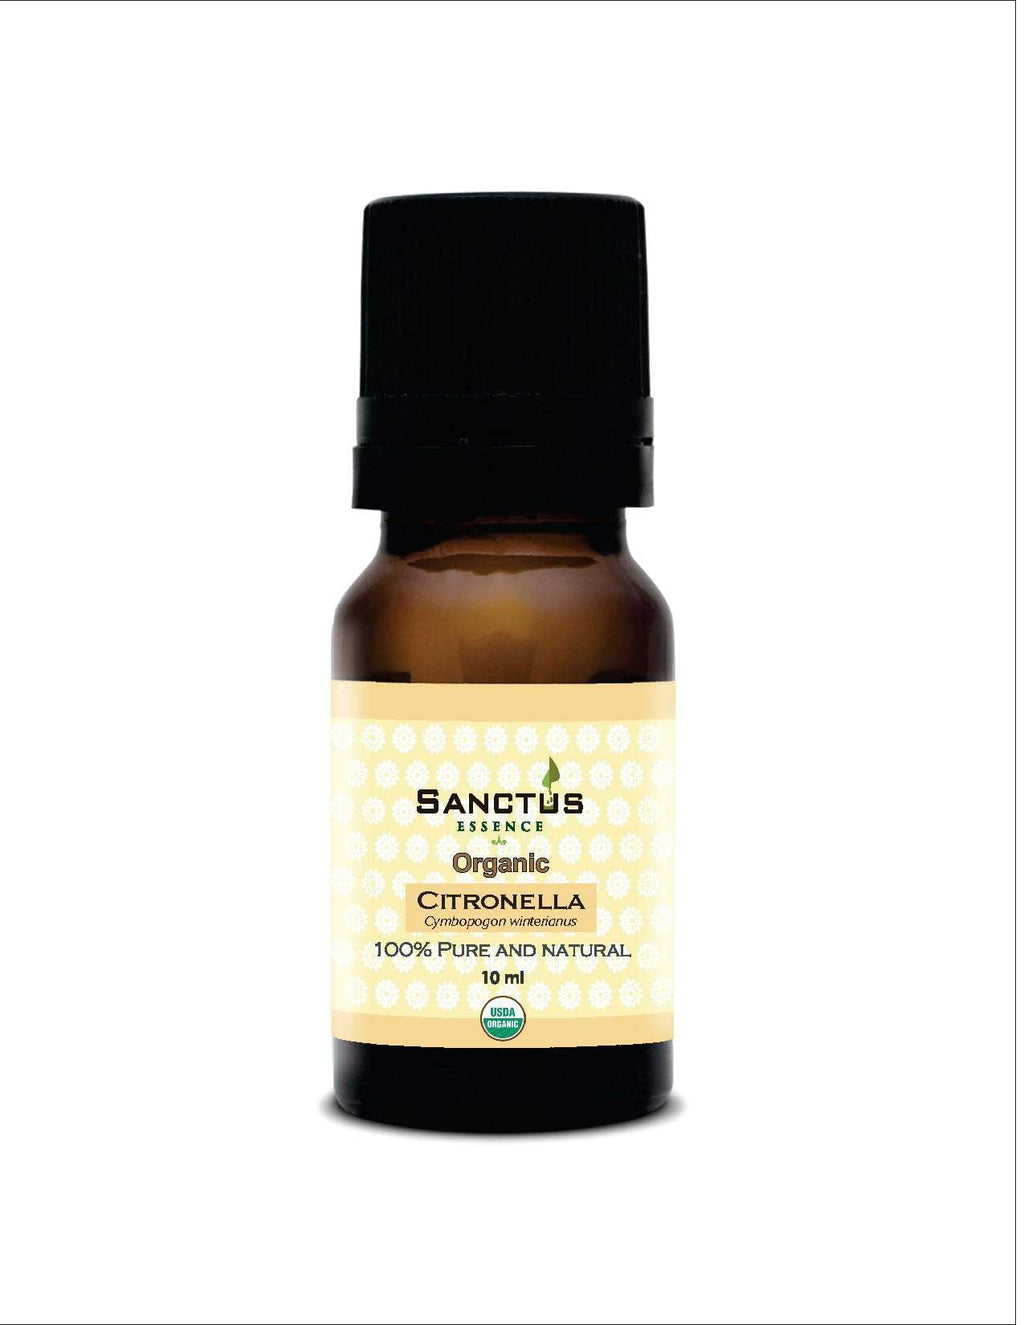 Organic Citronella Oil - Sanctus Essence